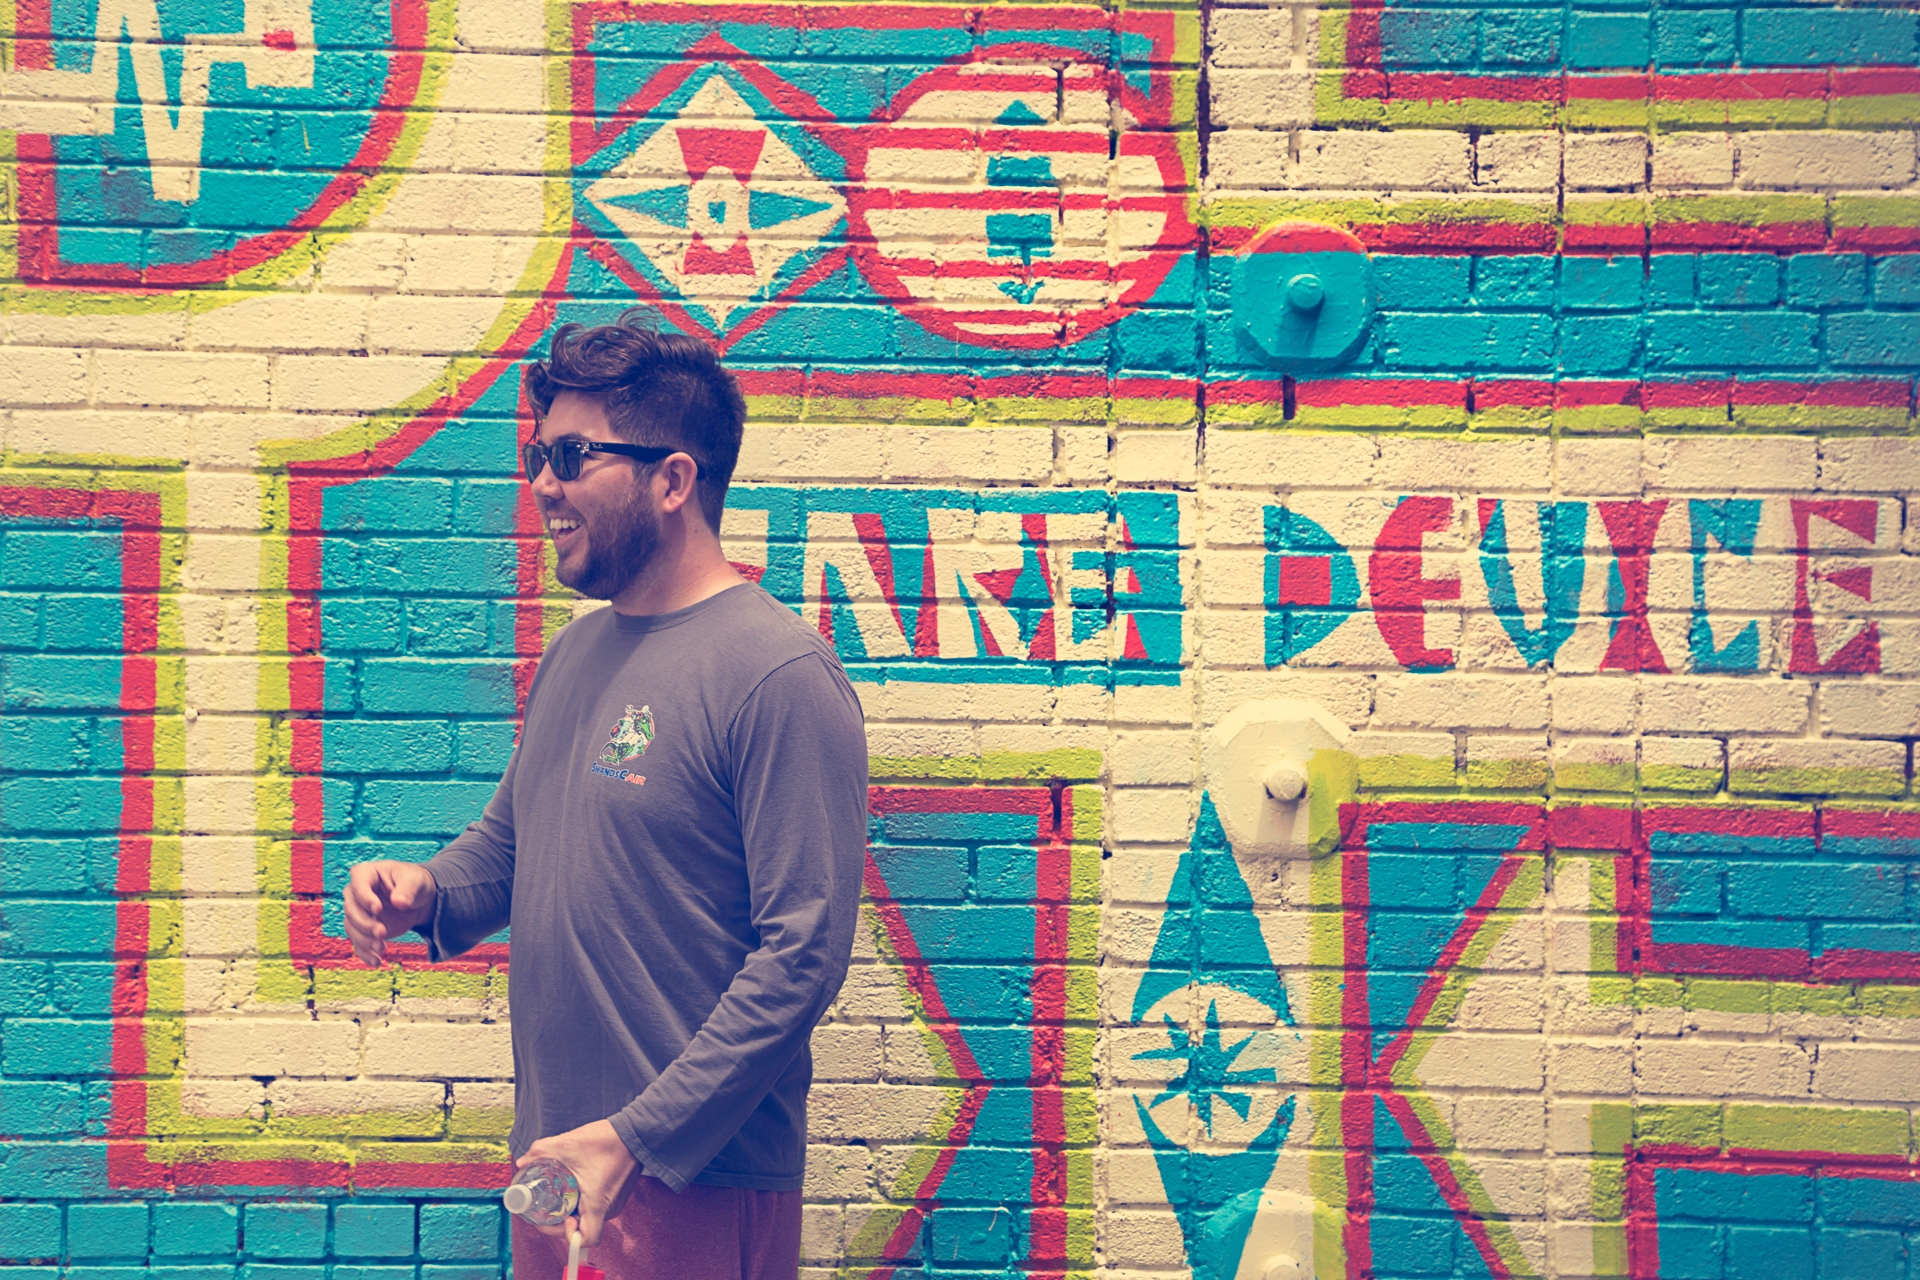 chris-laughing-graffiti-wall-san-francisco-patrick-sanders.jpg